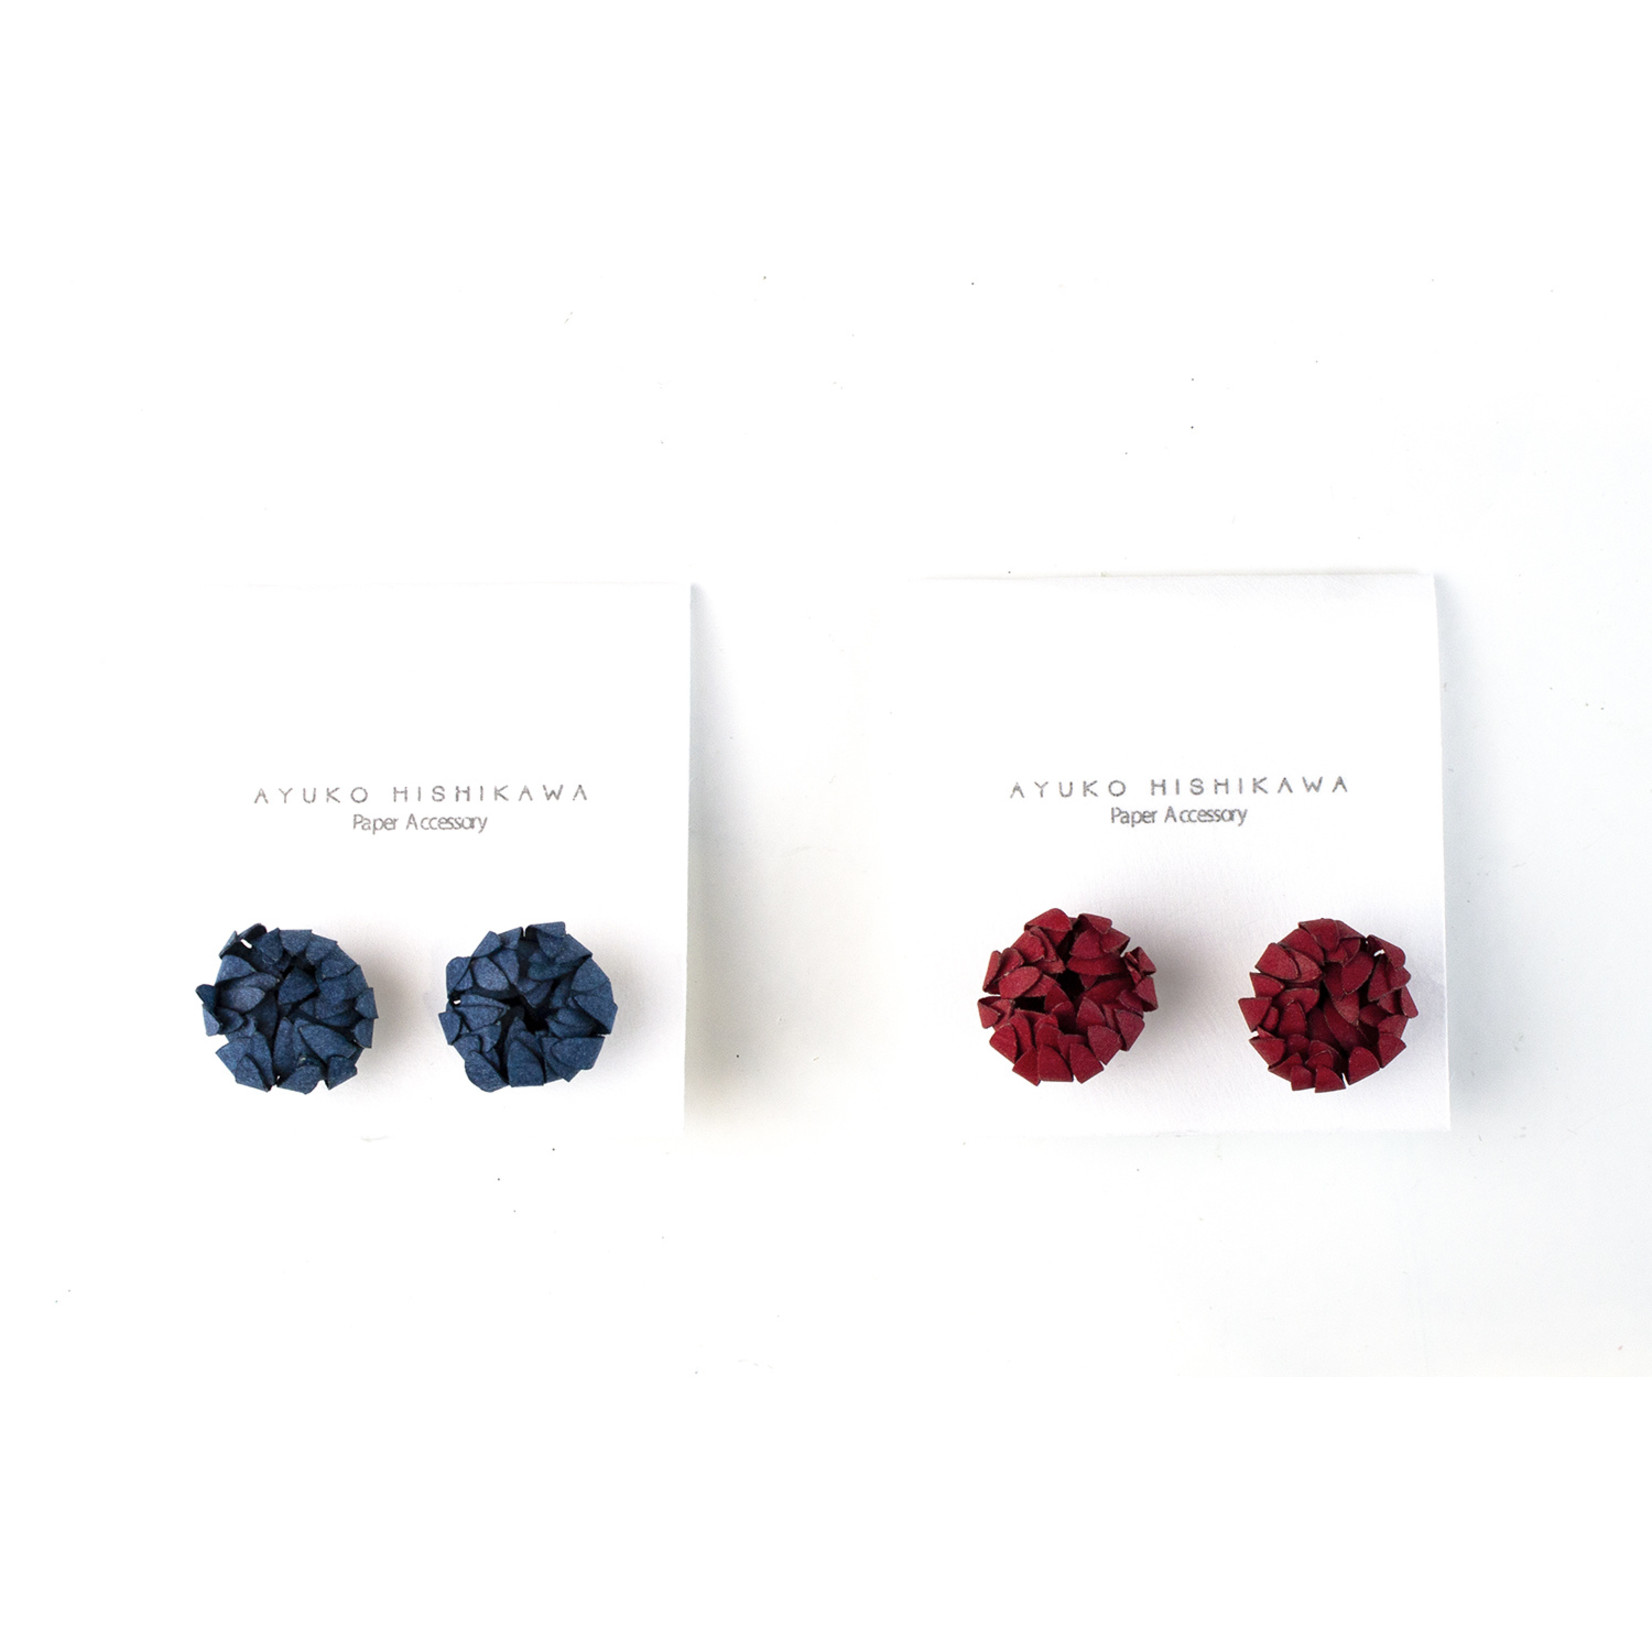 Based on Roots PAPER ACCESSORY pair stud earrings